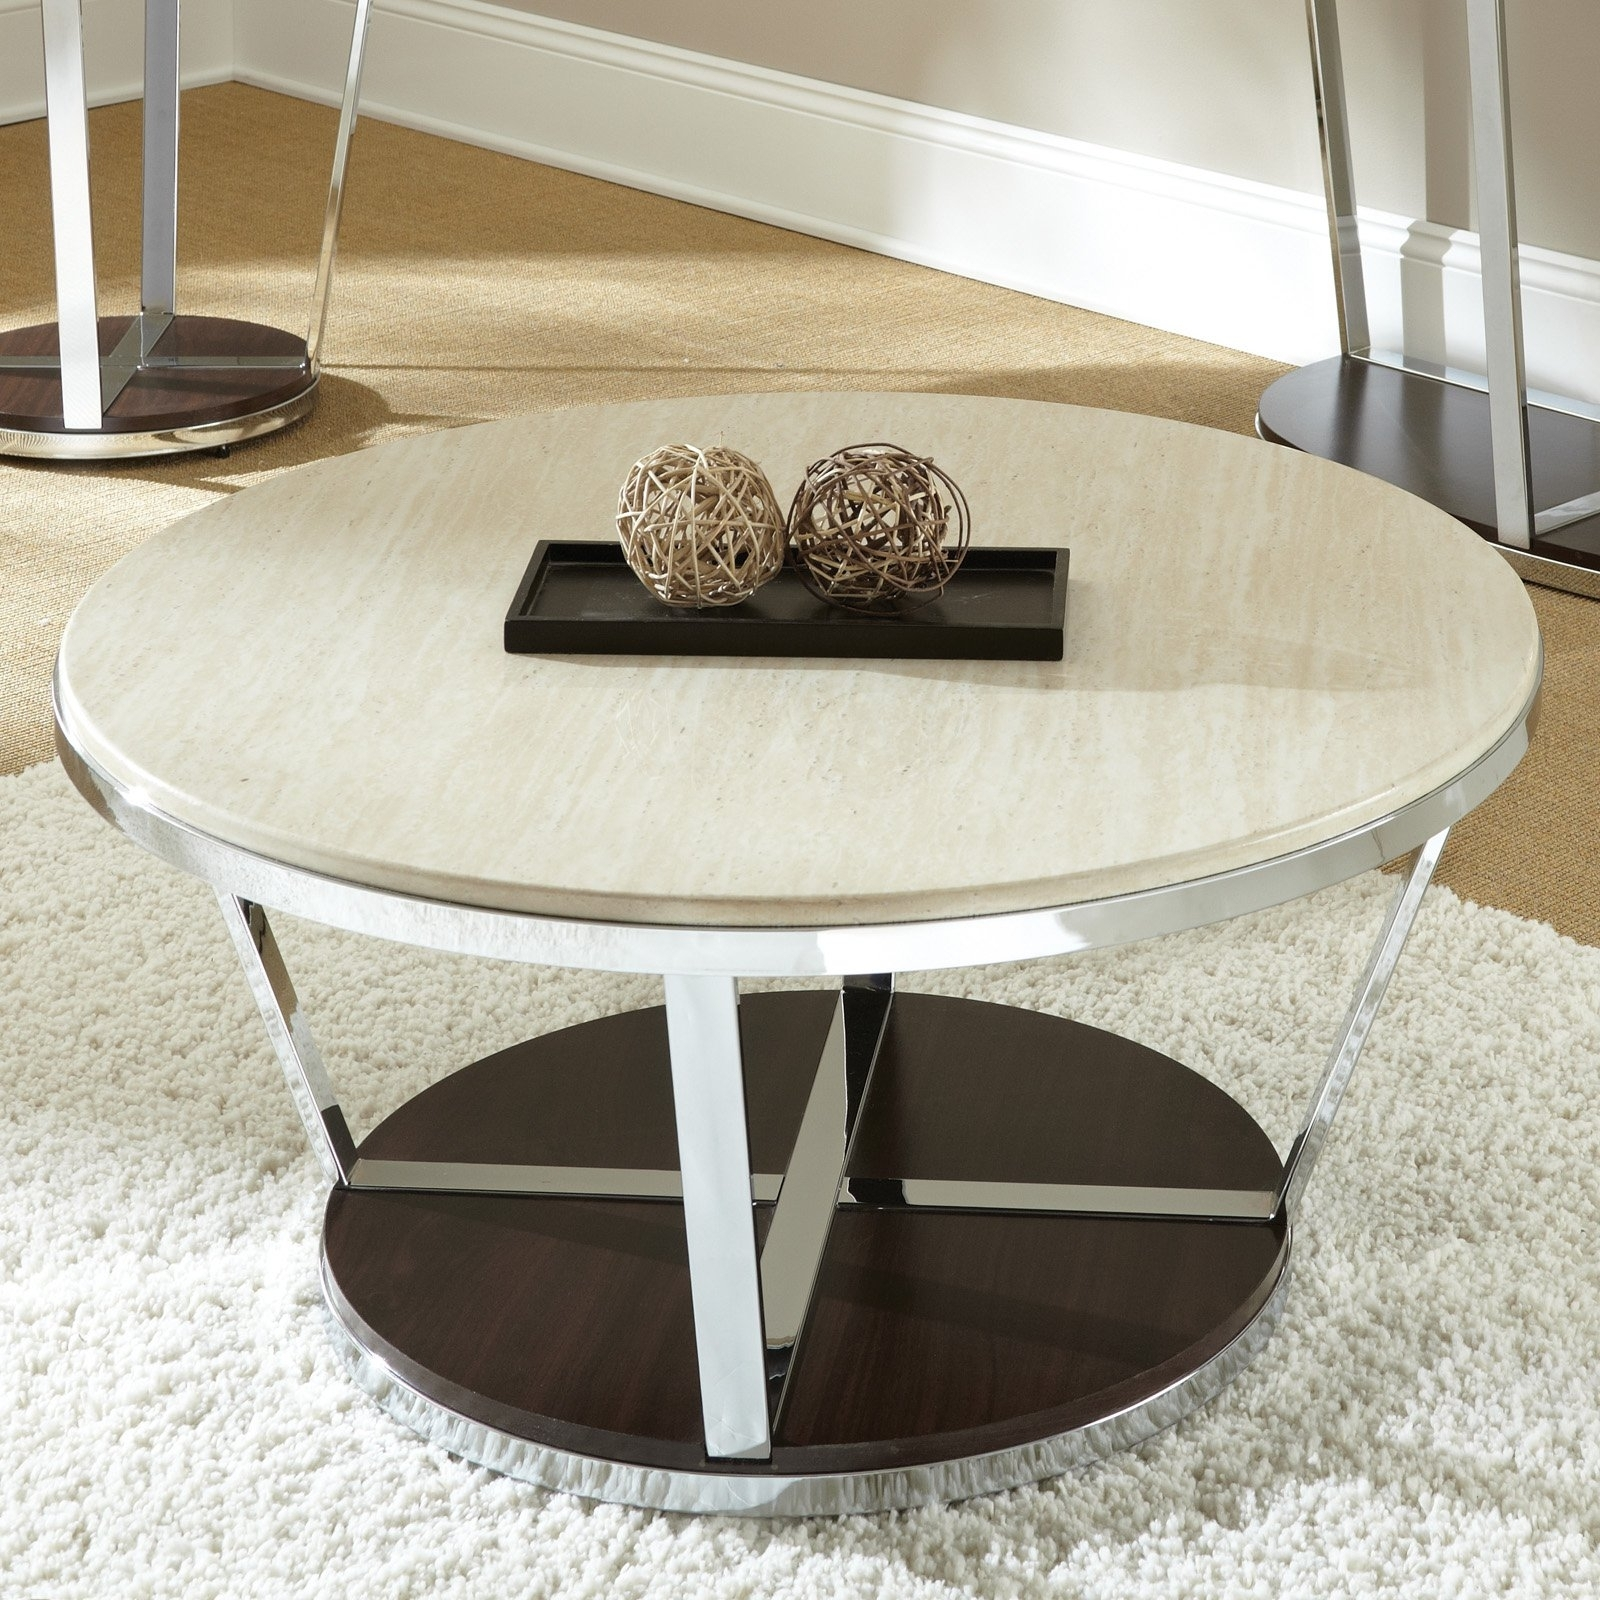 Coffee Tables Ideas Faux Marble Top Coffee Table Design Dry Erase With Widely Used Stone Top Coffee Tables (View 17 of 20)